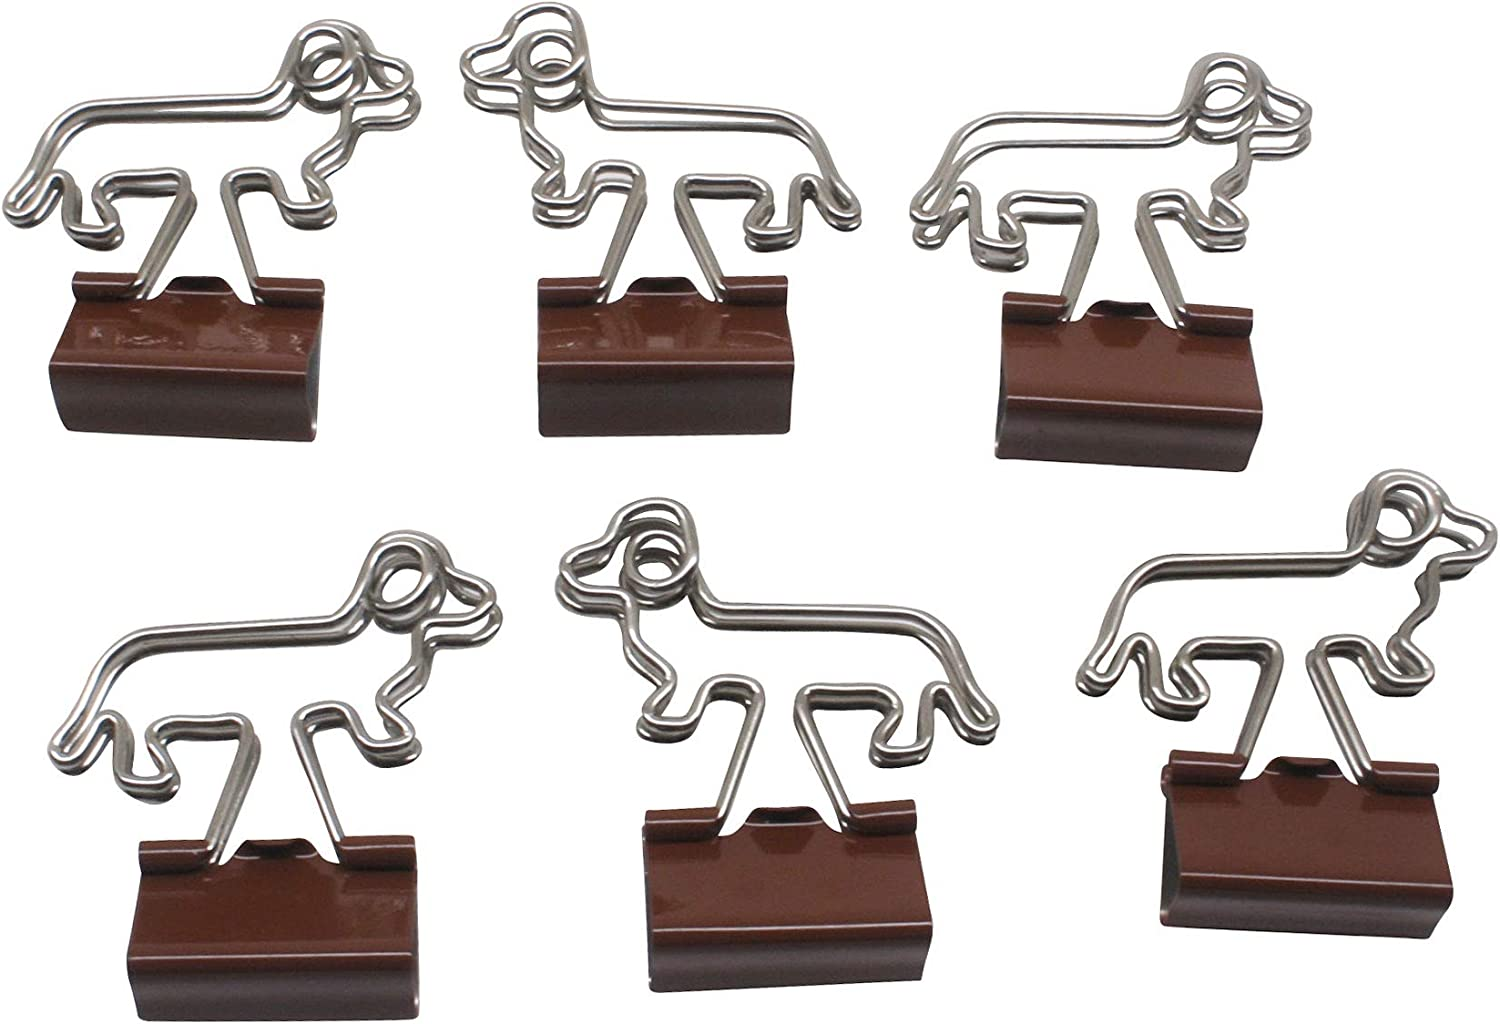 Butler in the Home Dachshund Shaped Binder Clips 25 Count Bag Small 23mm Office Gift (Brown)